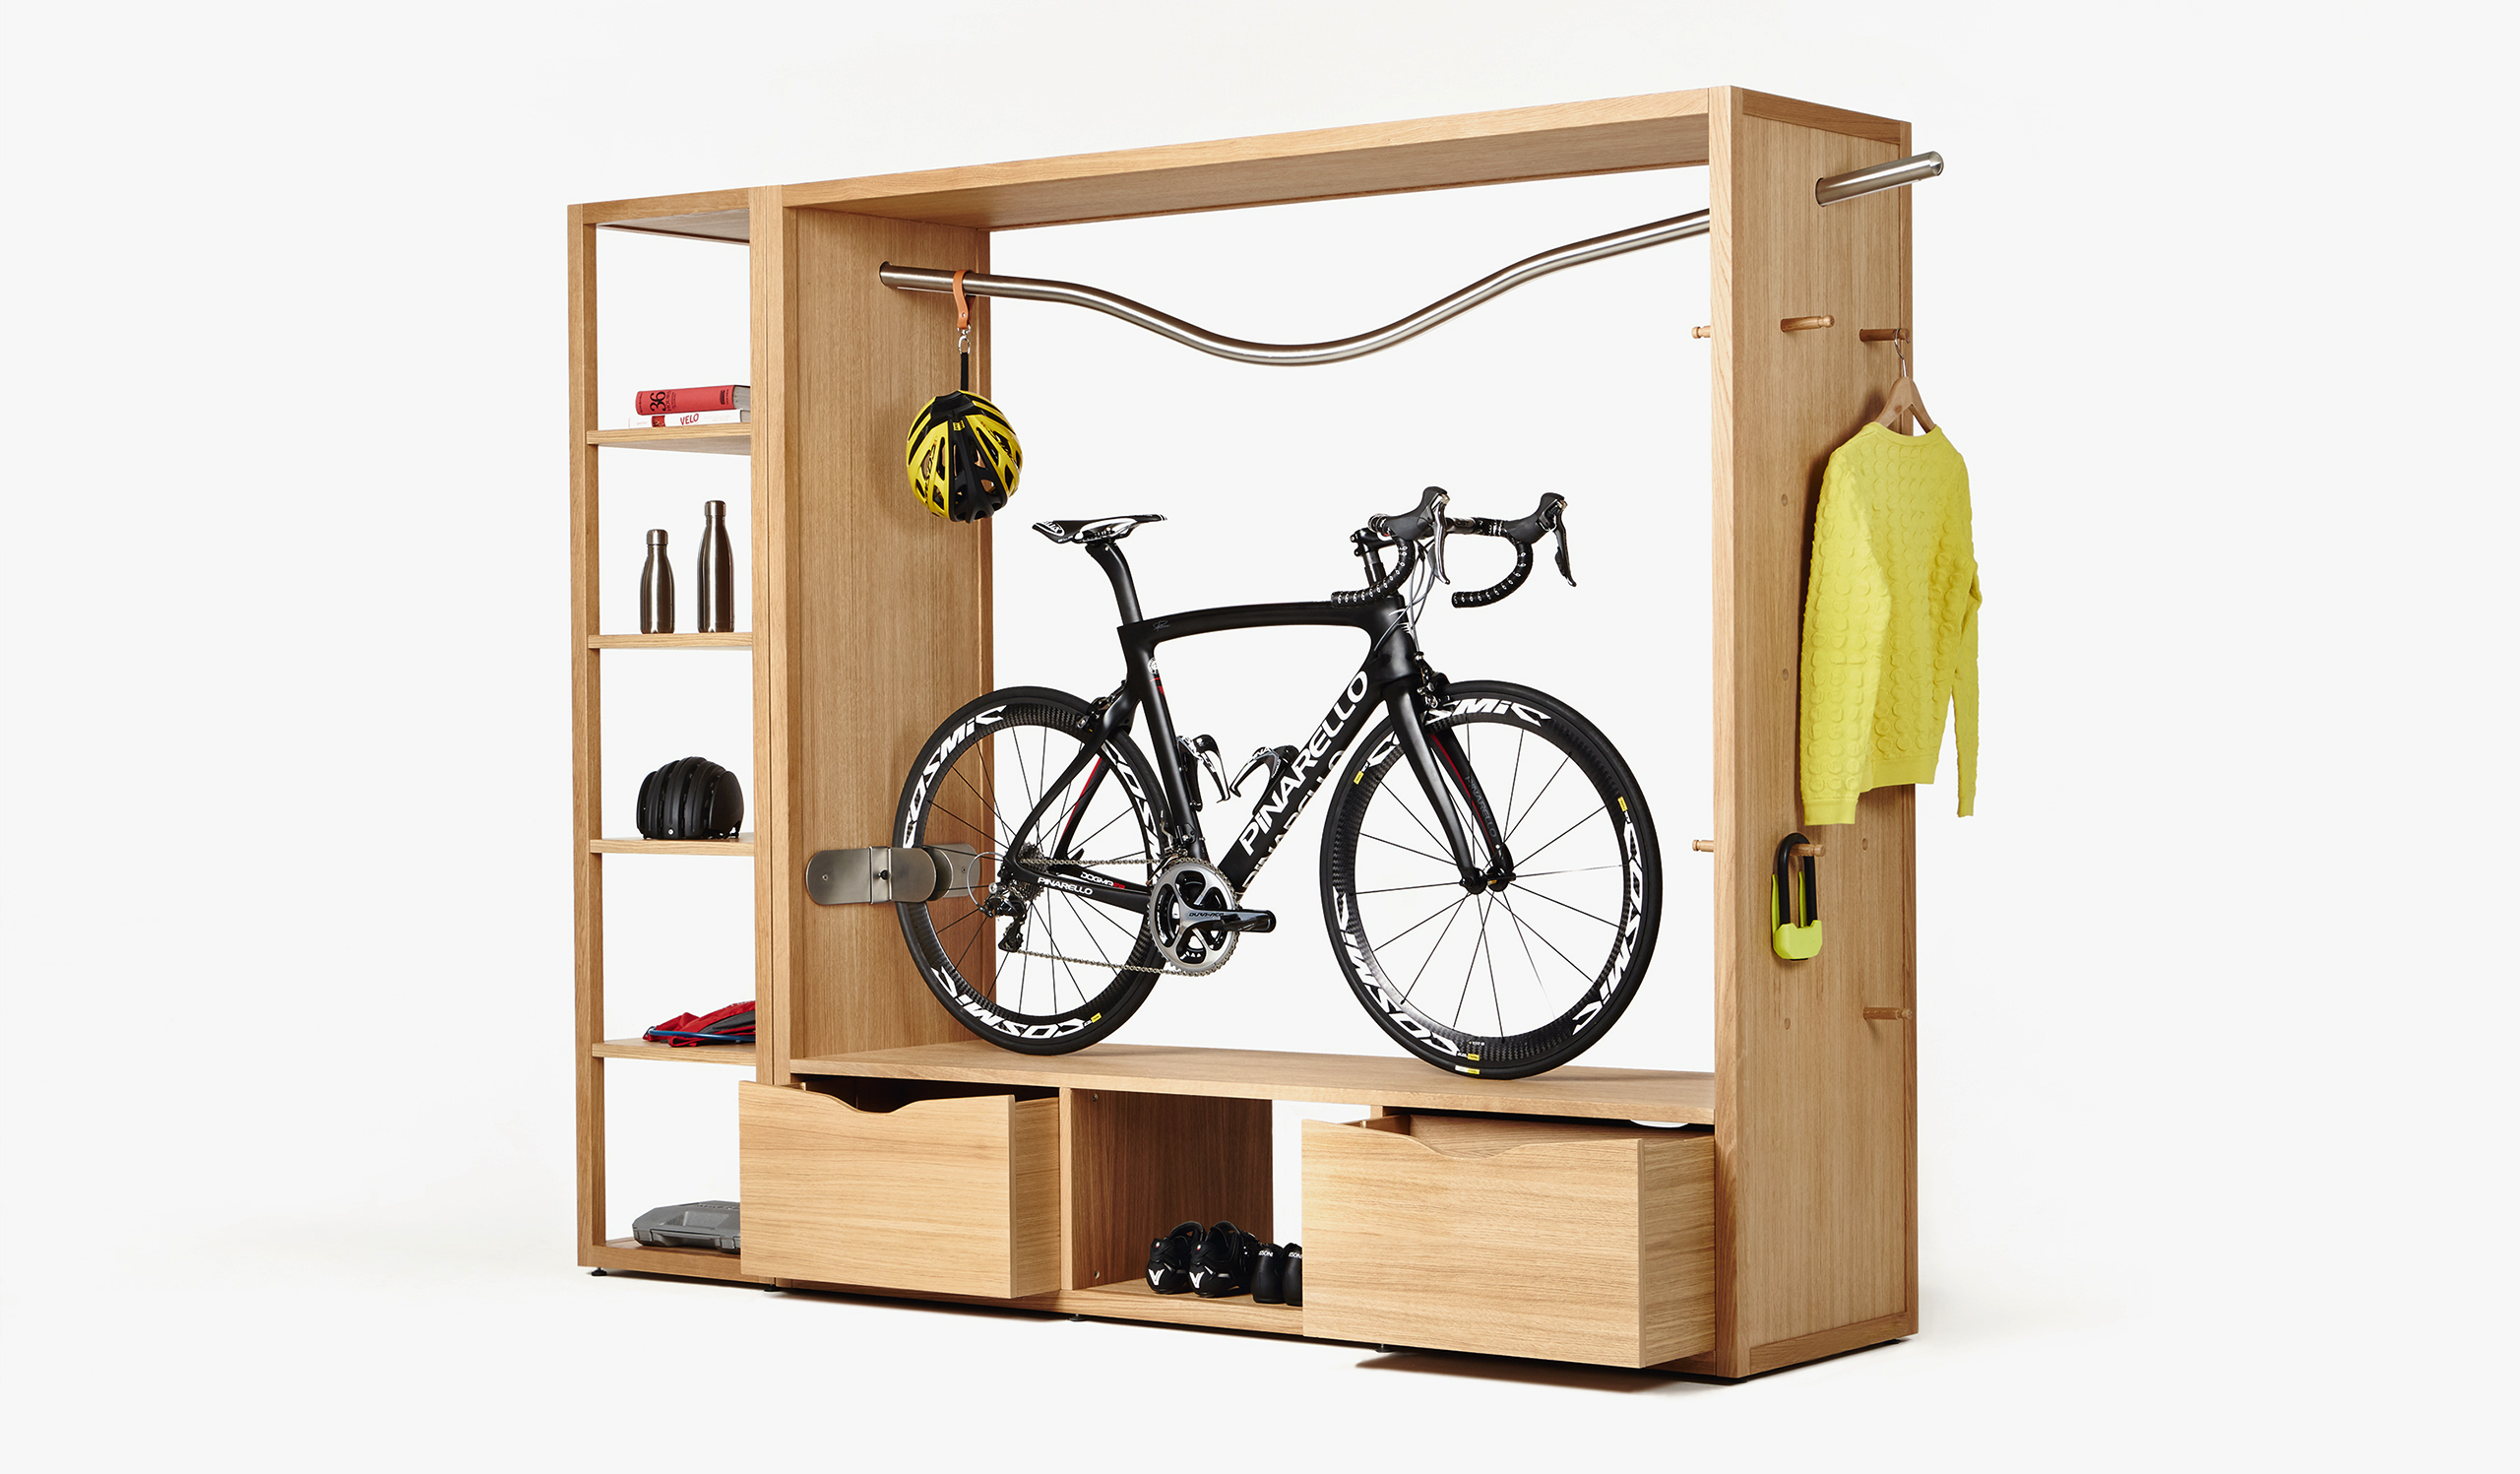 Bike_Shelf_05.jpg